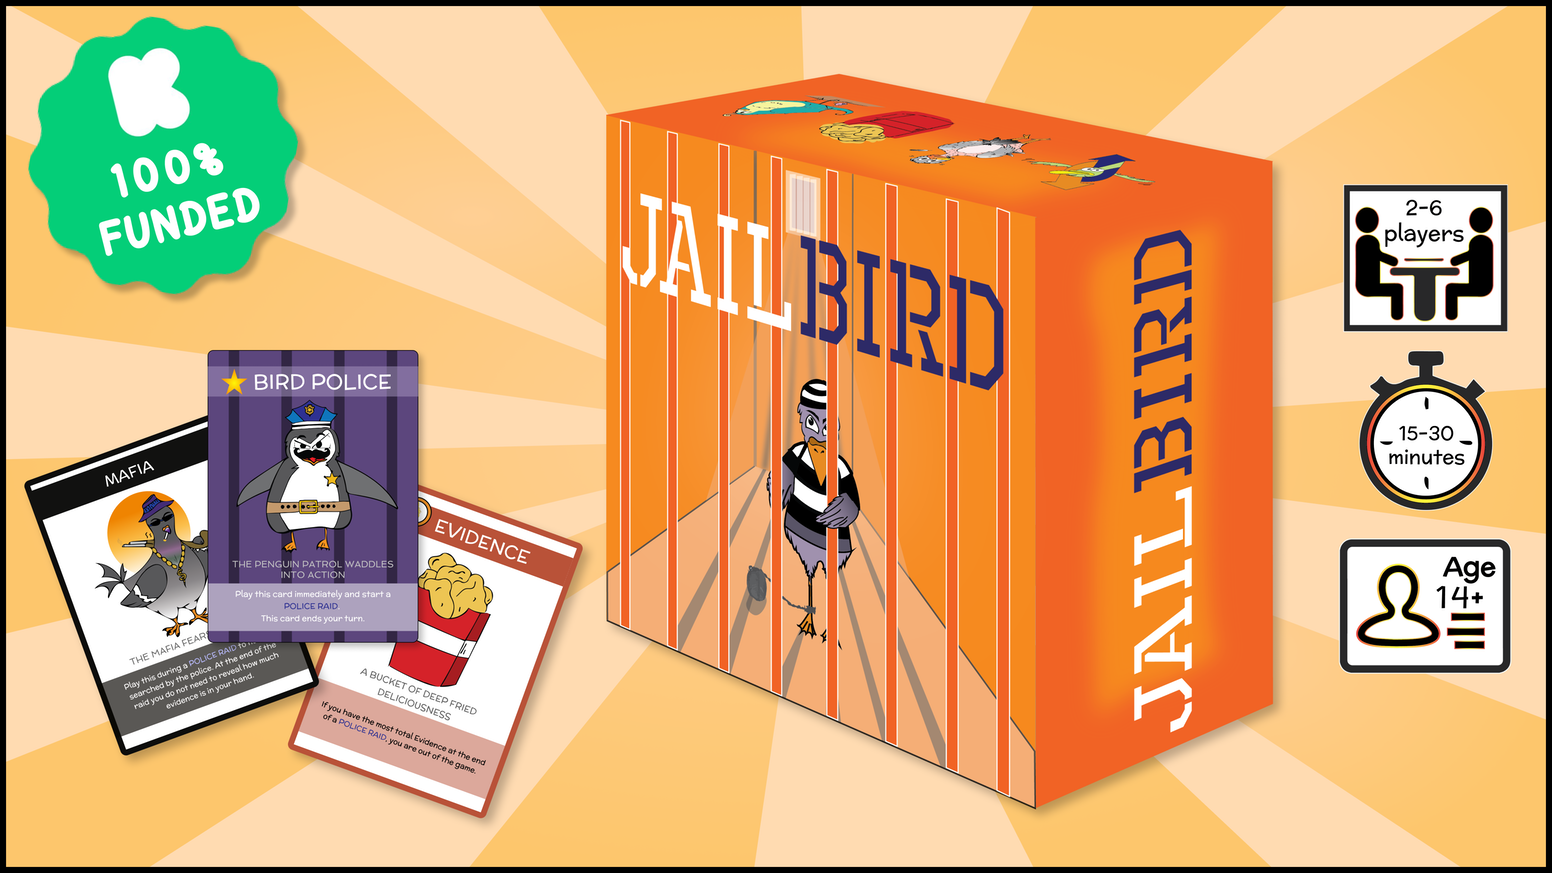 A card game about criminal birds. Collect cards. Frame your friends. Lock them up in jail.